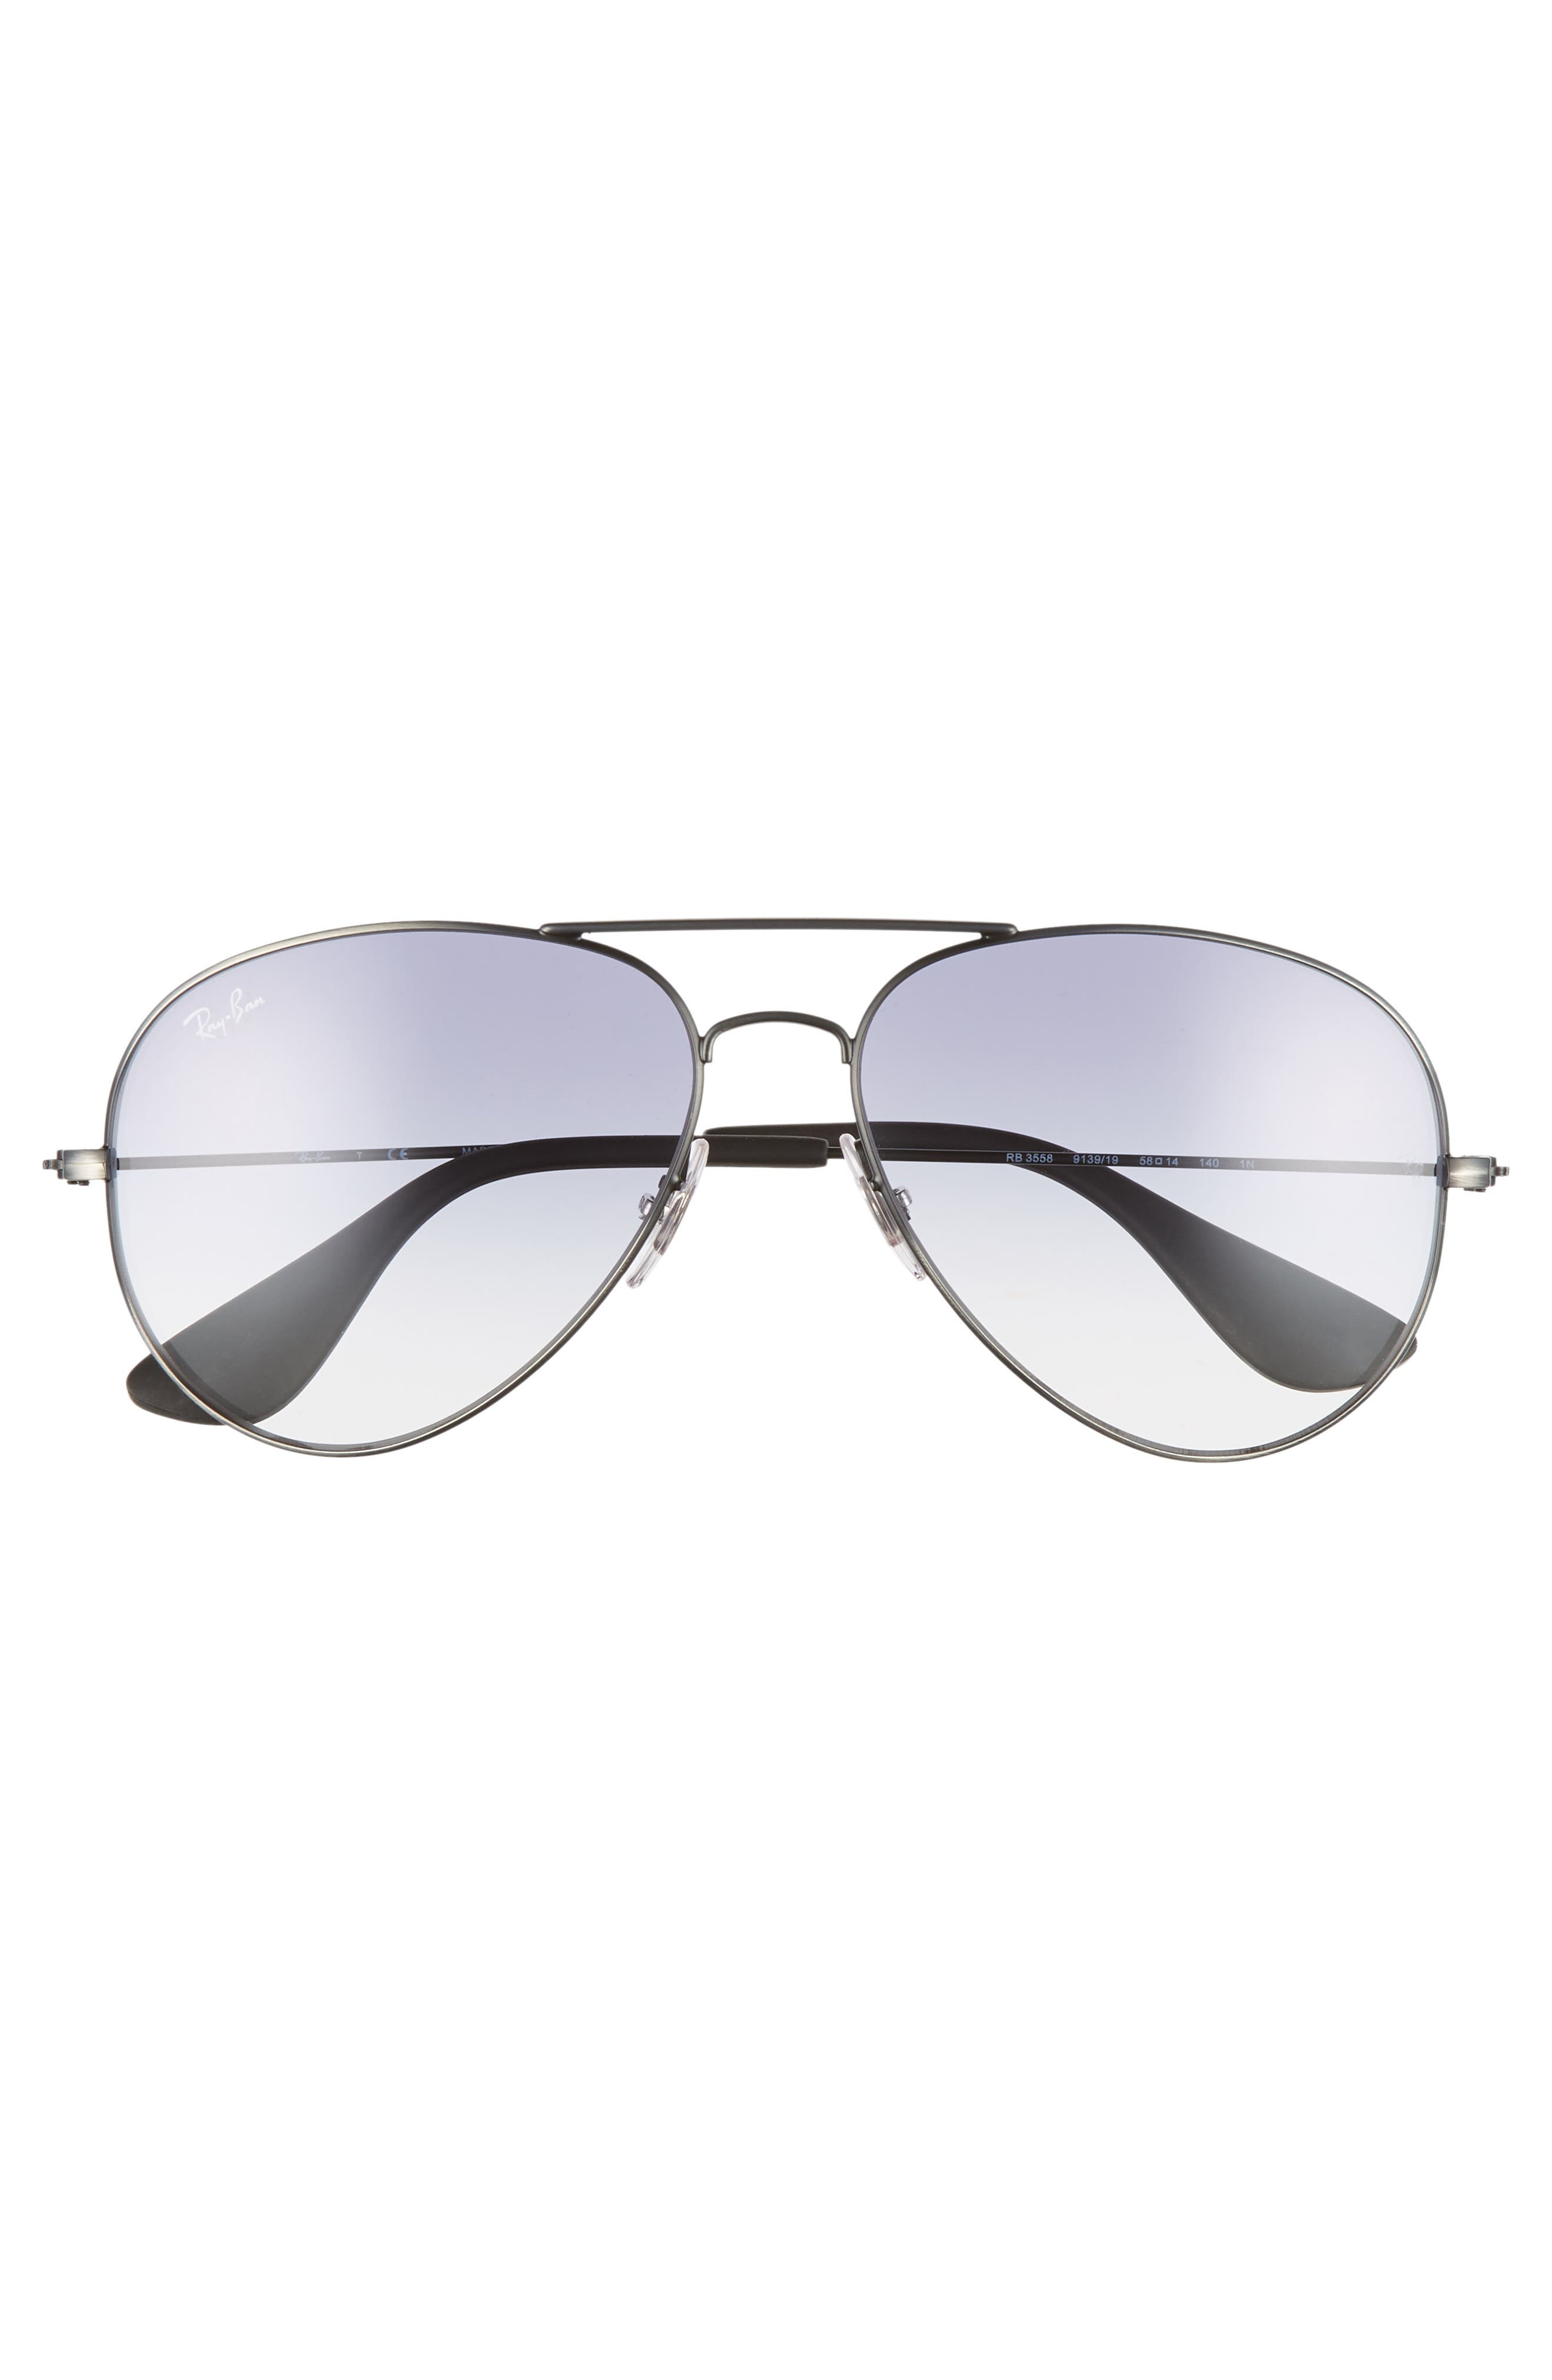 RAY-BAN,                             58mm Gradient Aviator Sunglasses,                             Alternate thumbnail 3, color,                             SILVER/ LIGHT BLUE GRADIENT